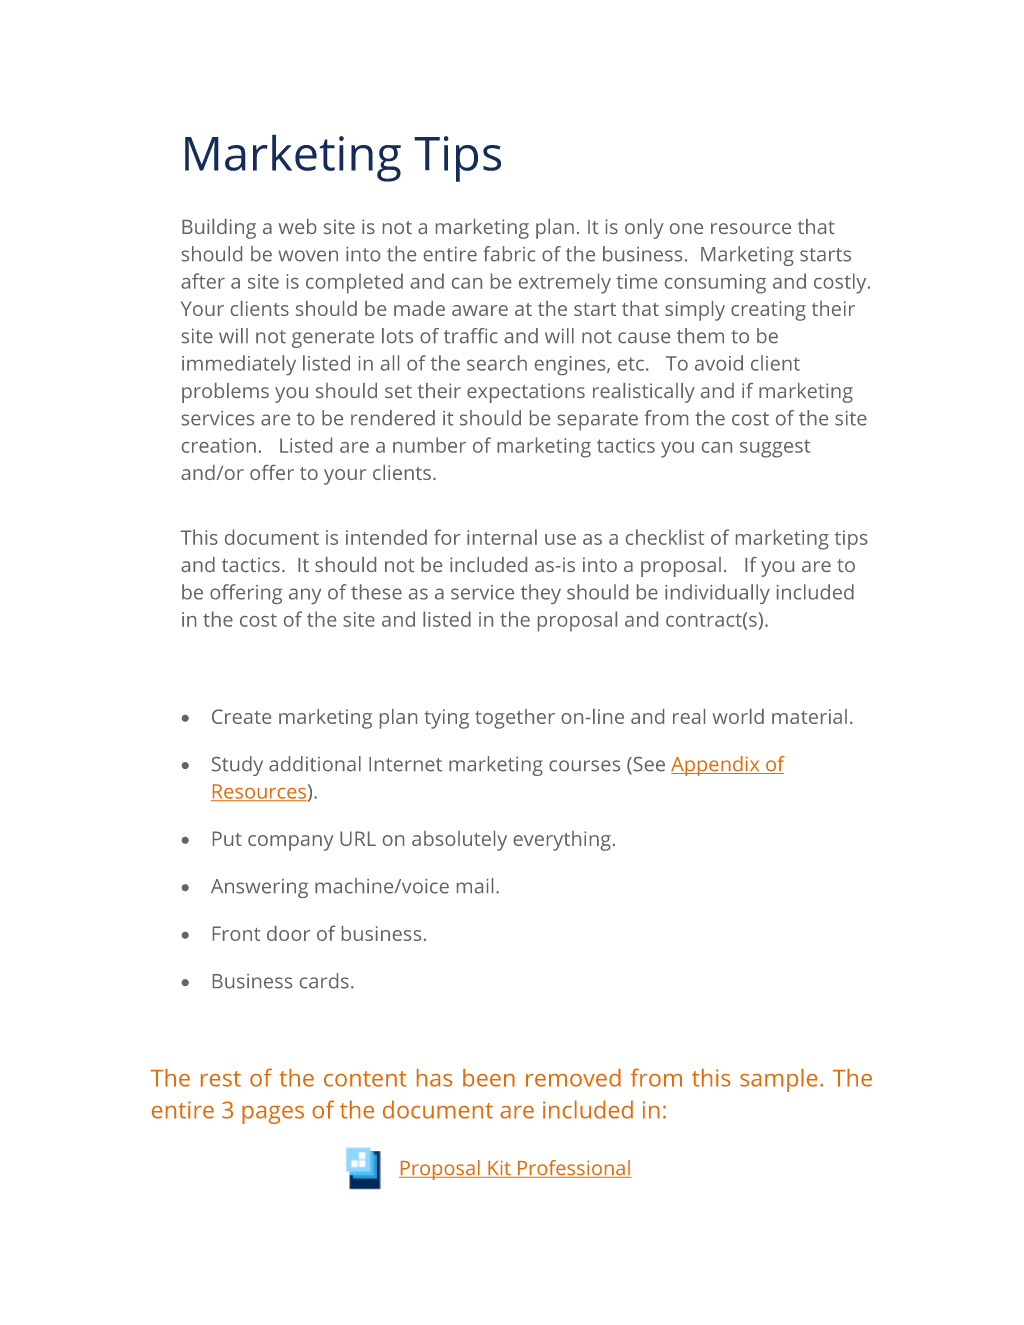 Project Marketing Tips